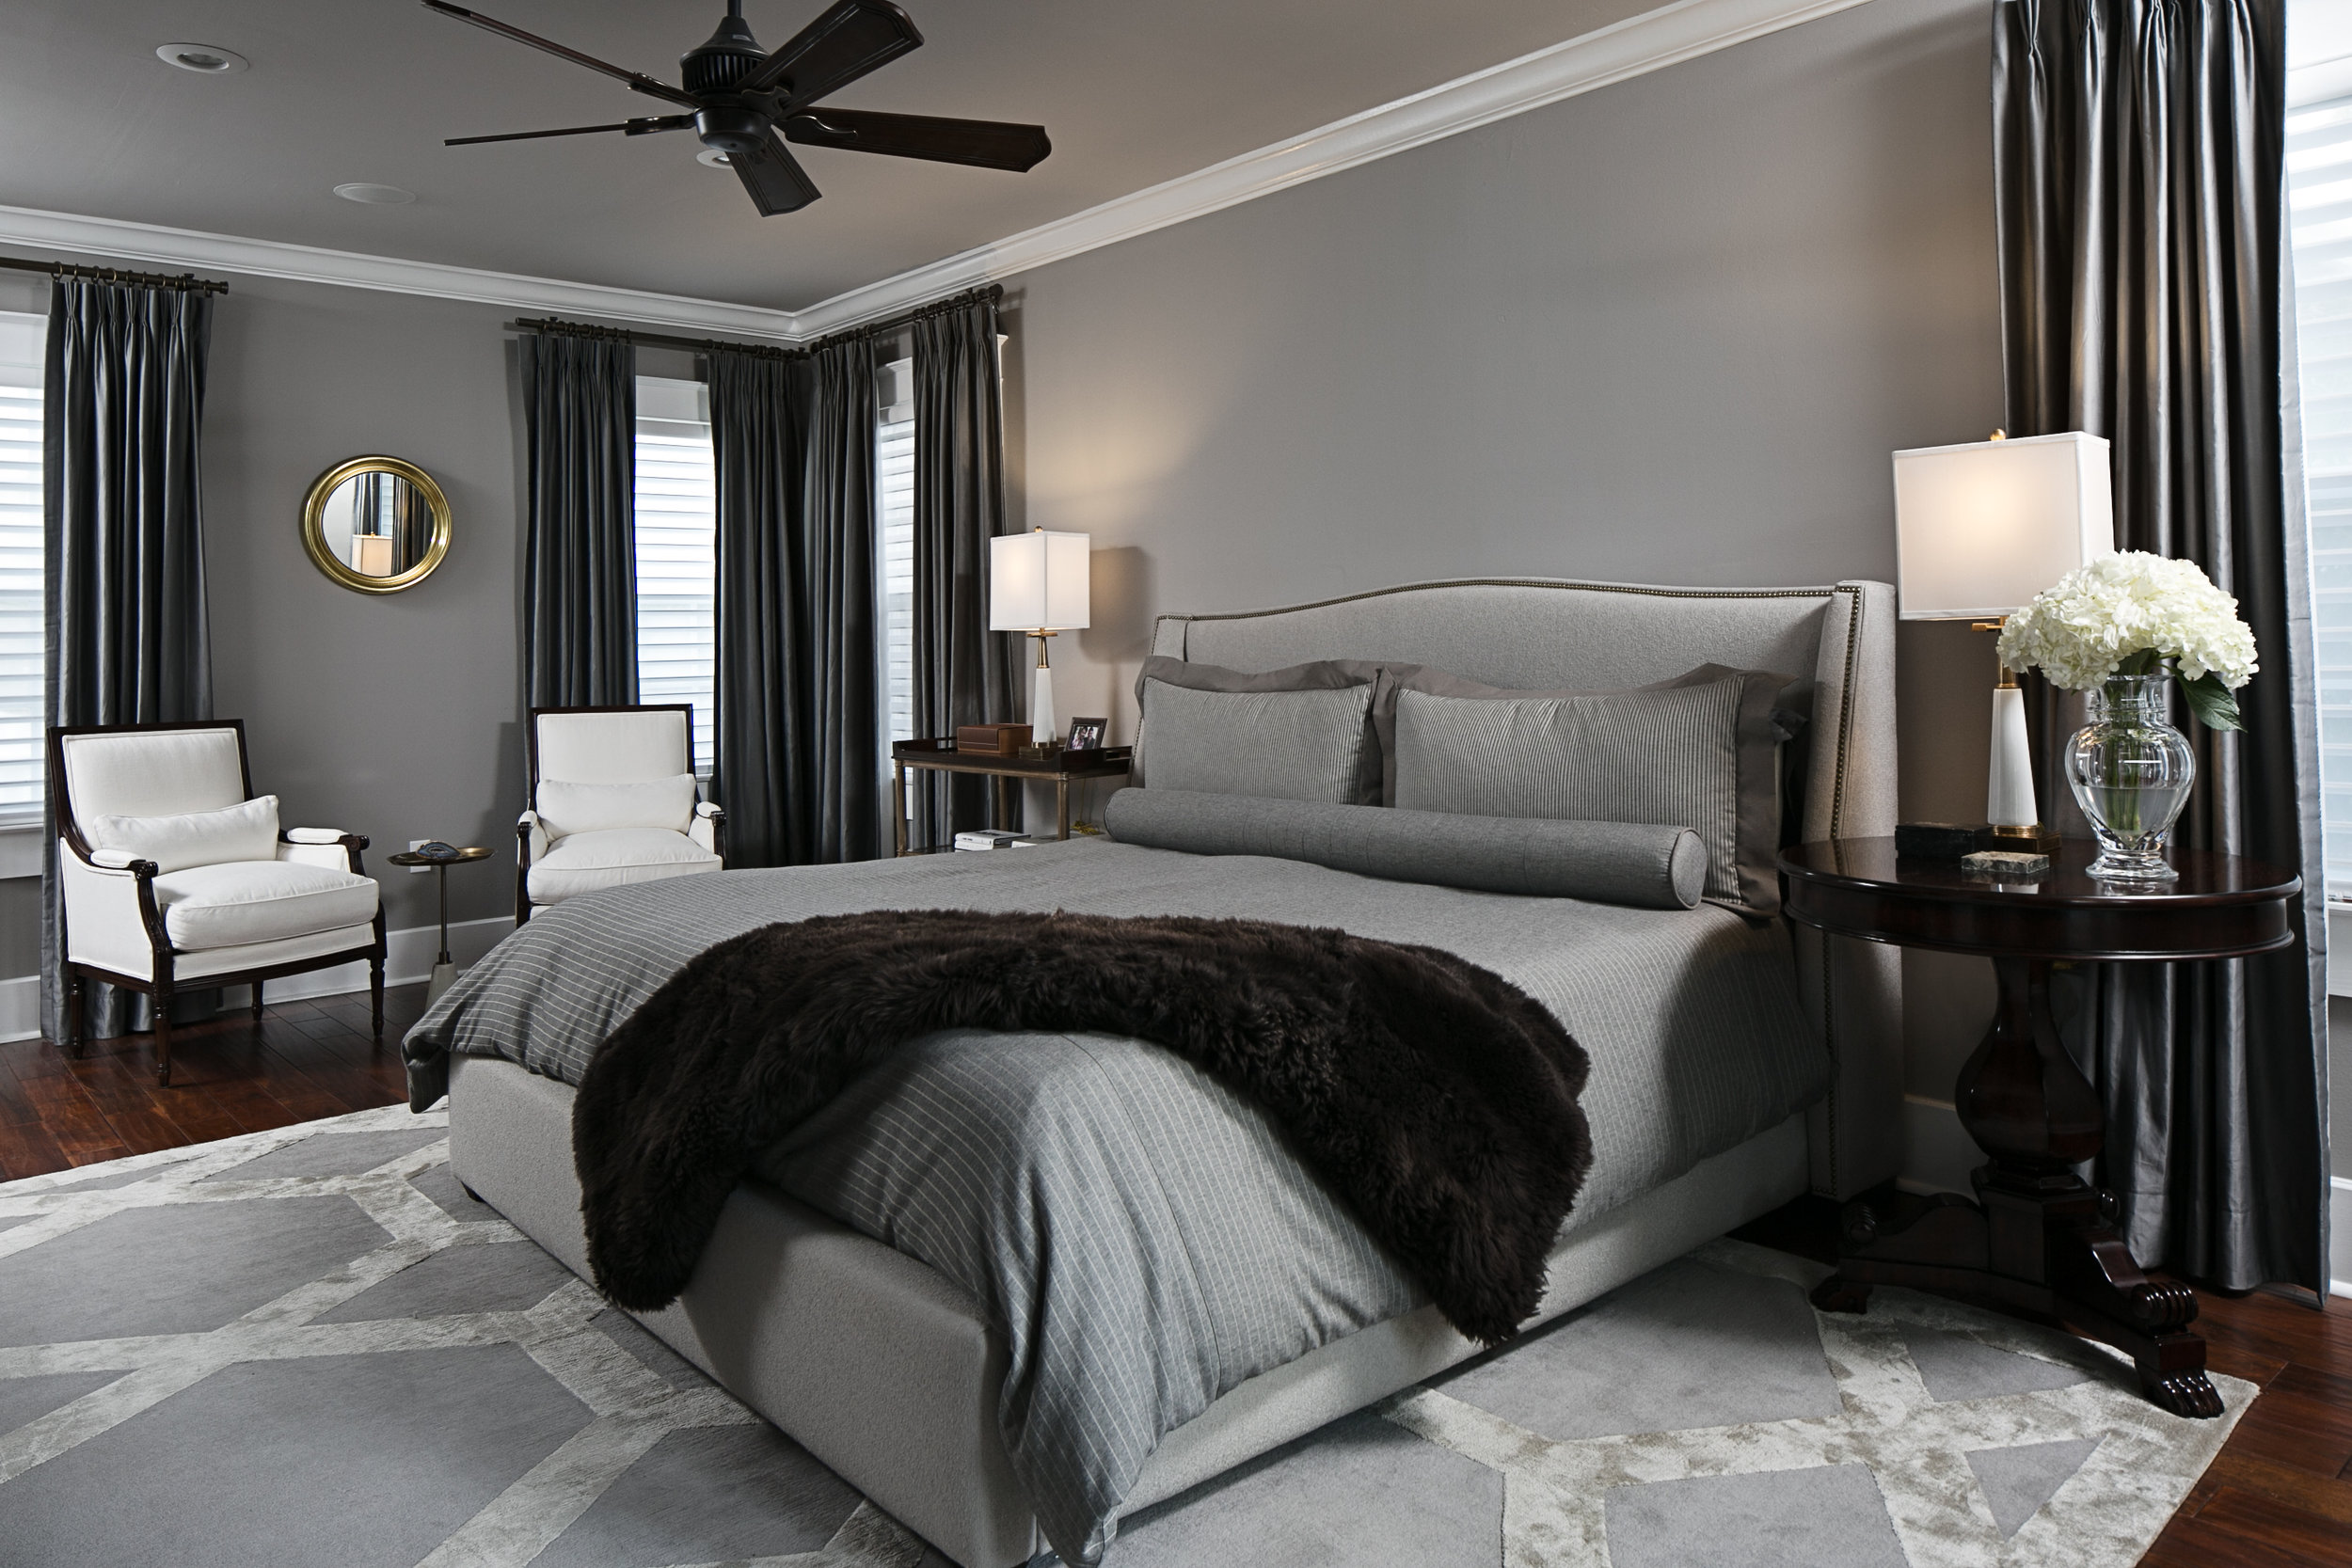 luxury_gray_masterbedroom_interiordesign_lisagilmoredesign1